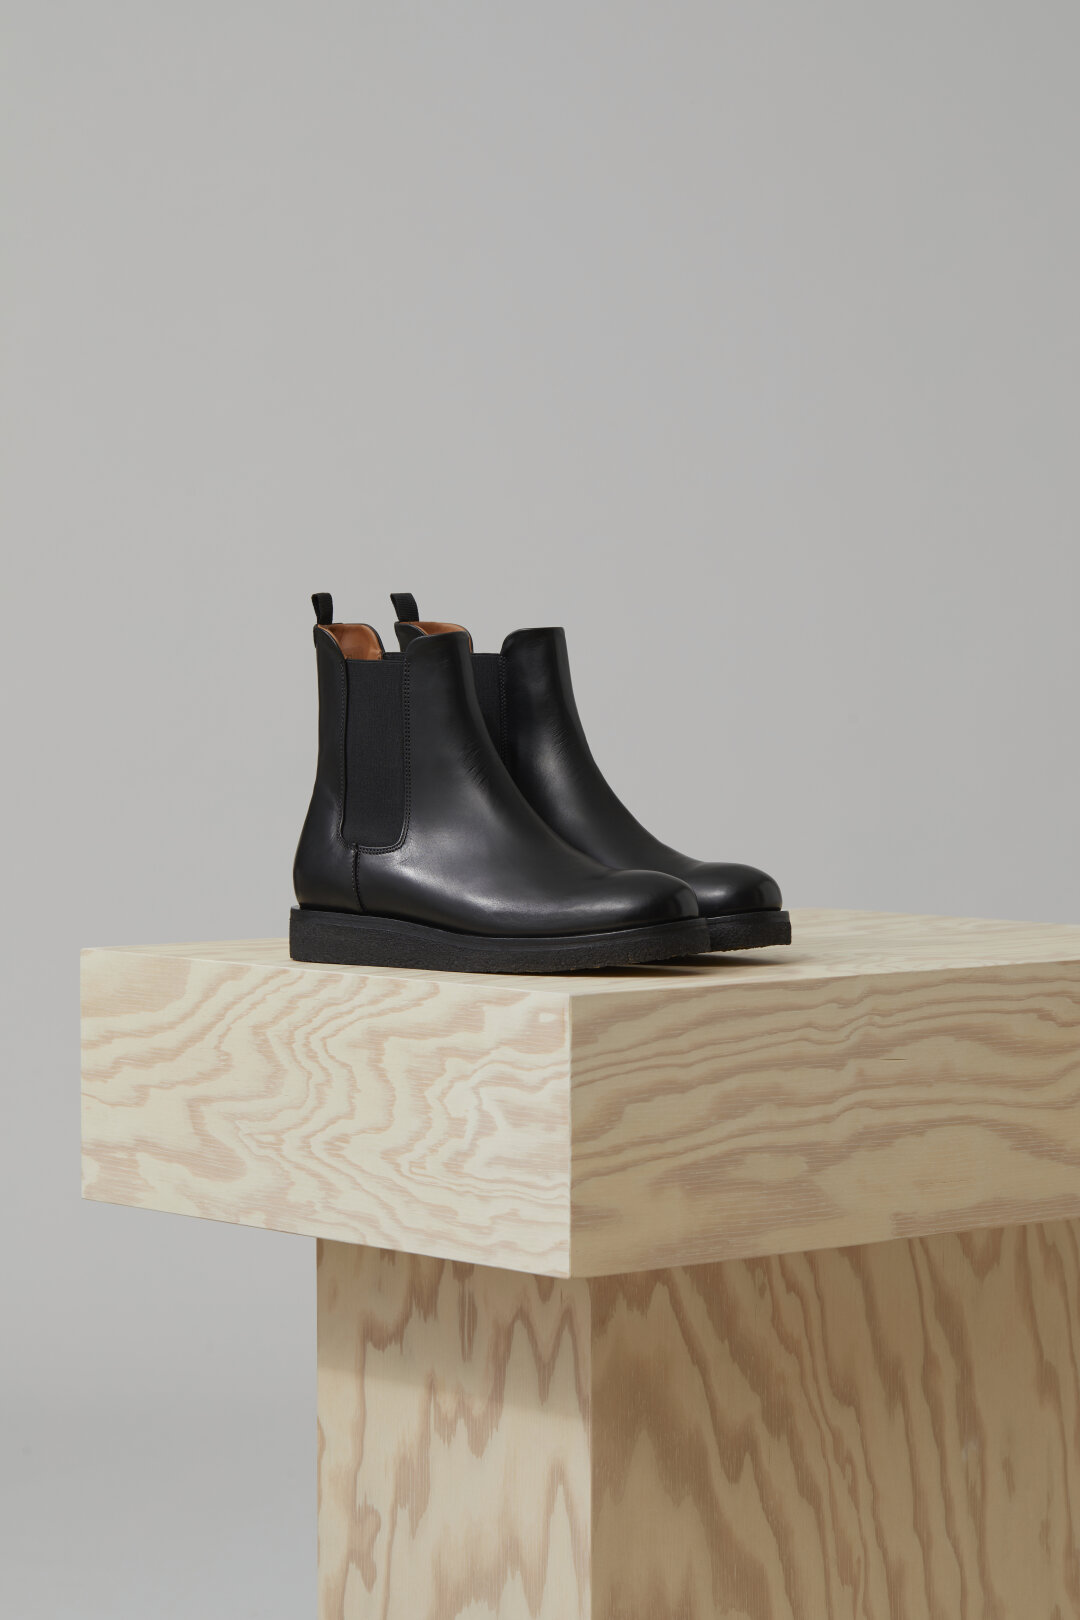 Chelsea Boots with Crepe Sole